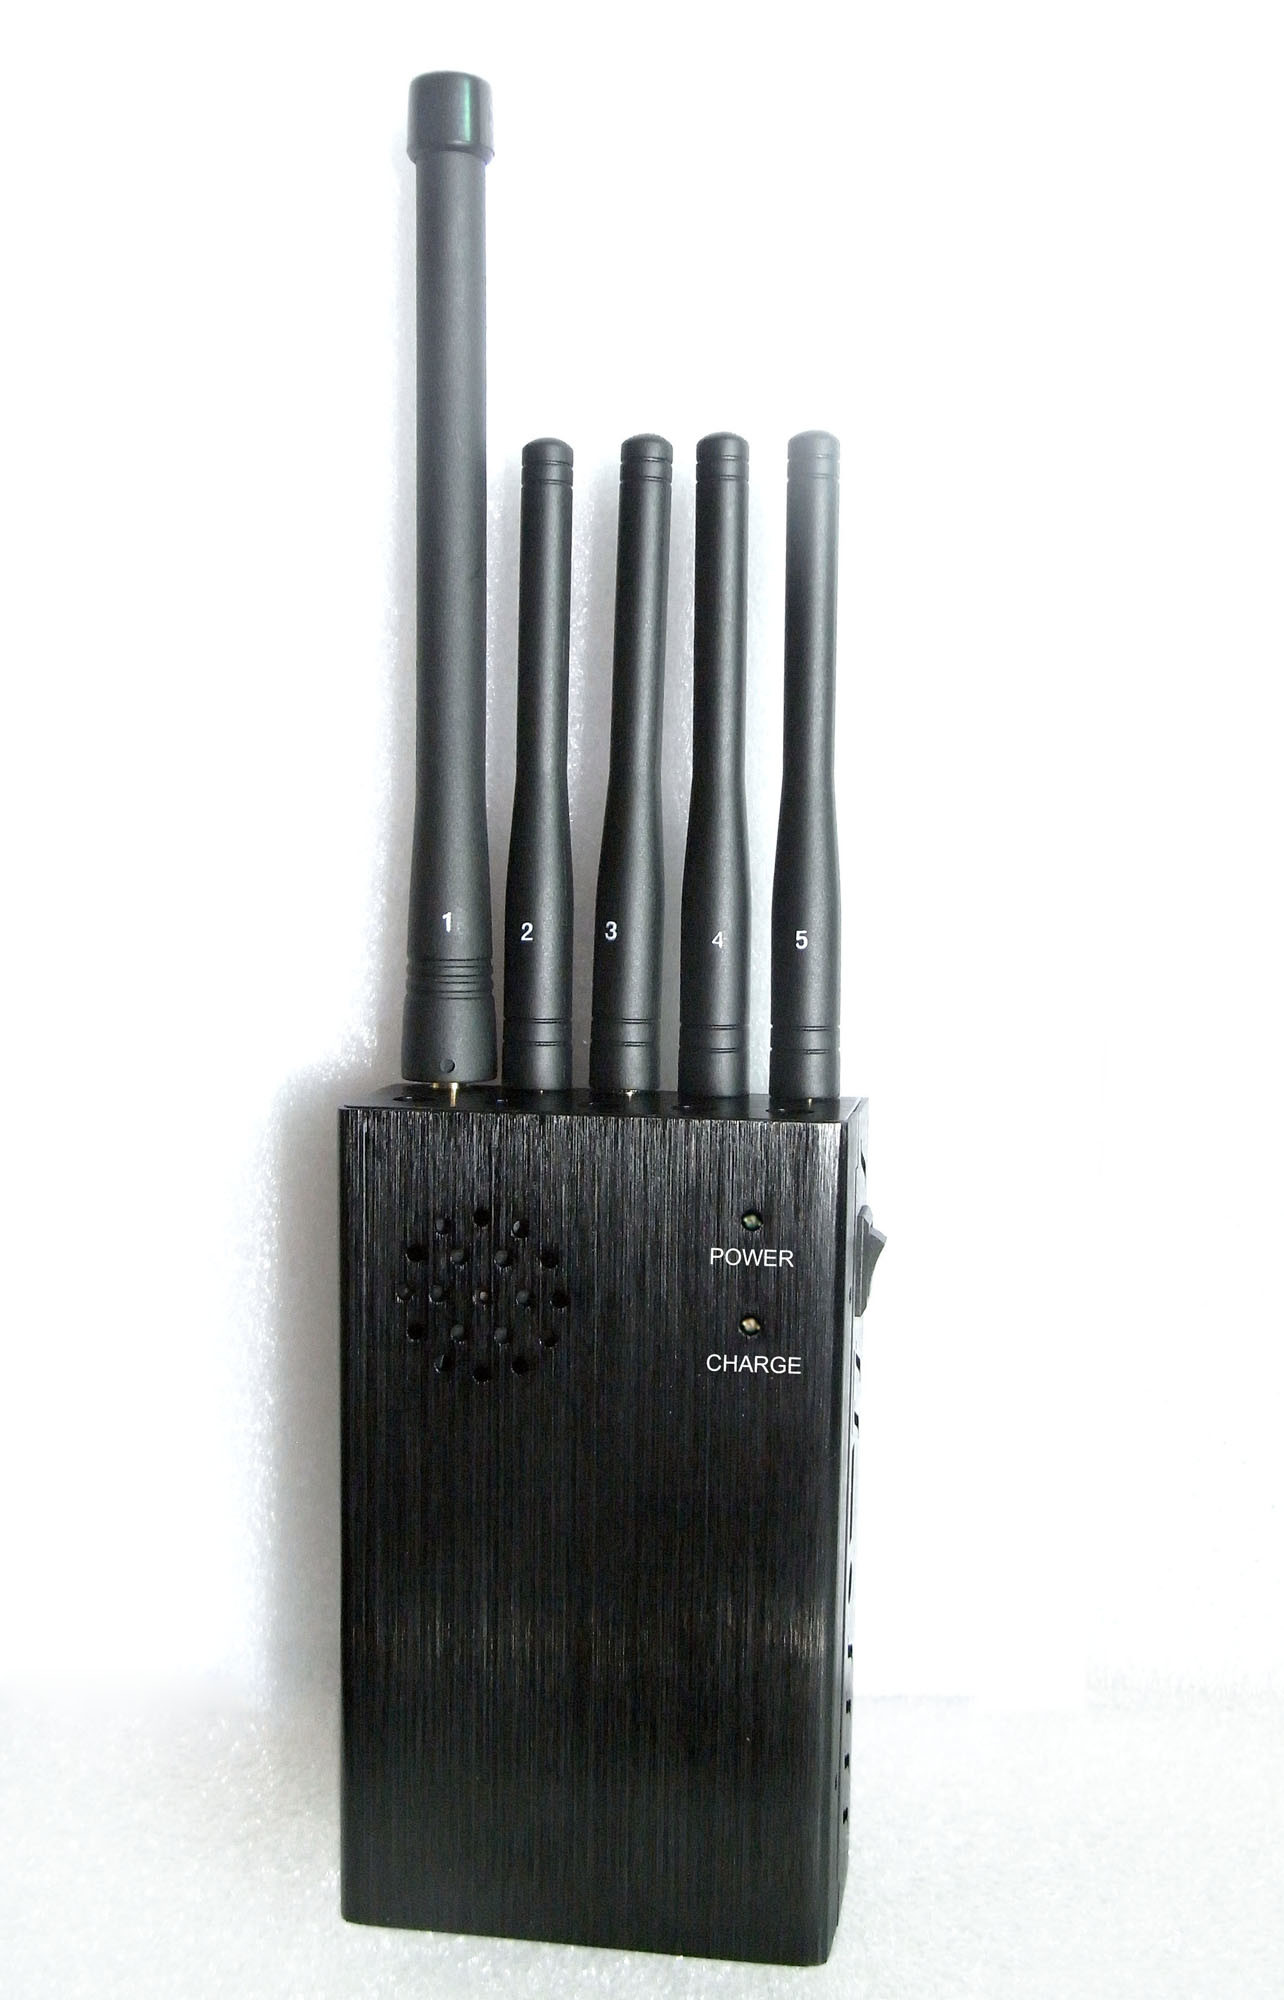 high power gps jammer currently